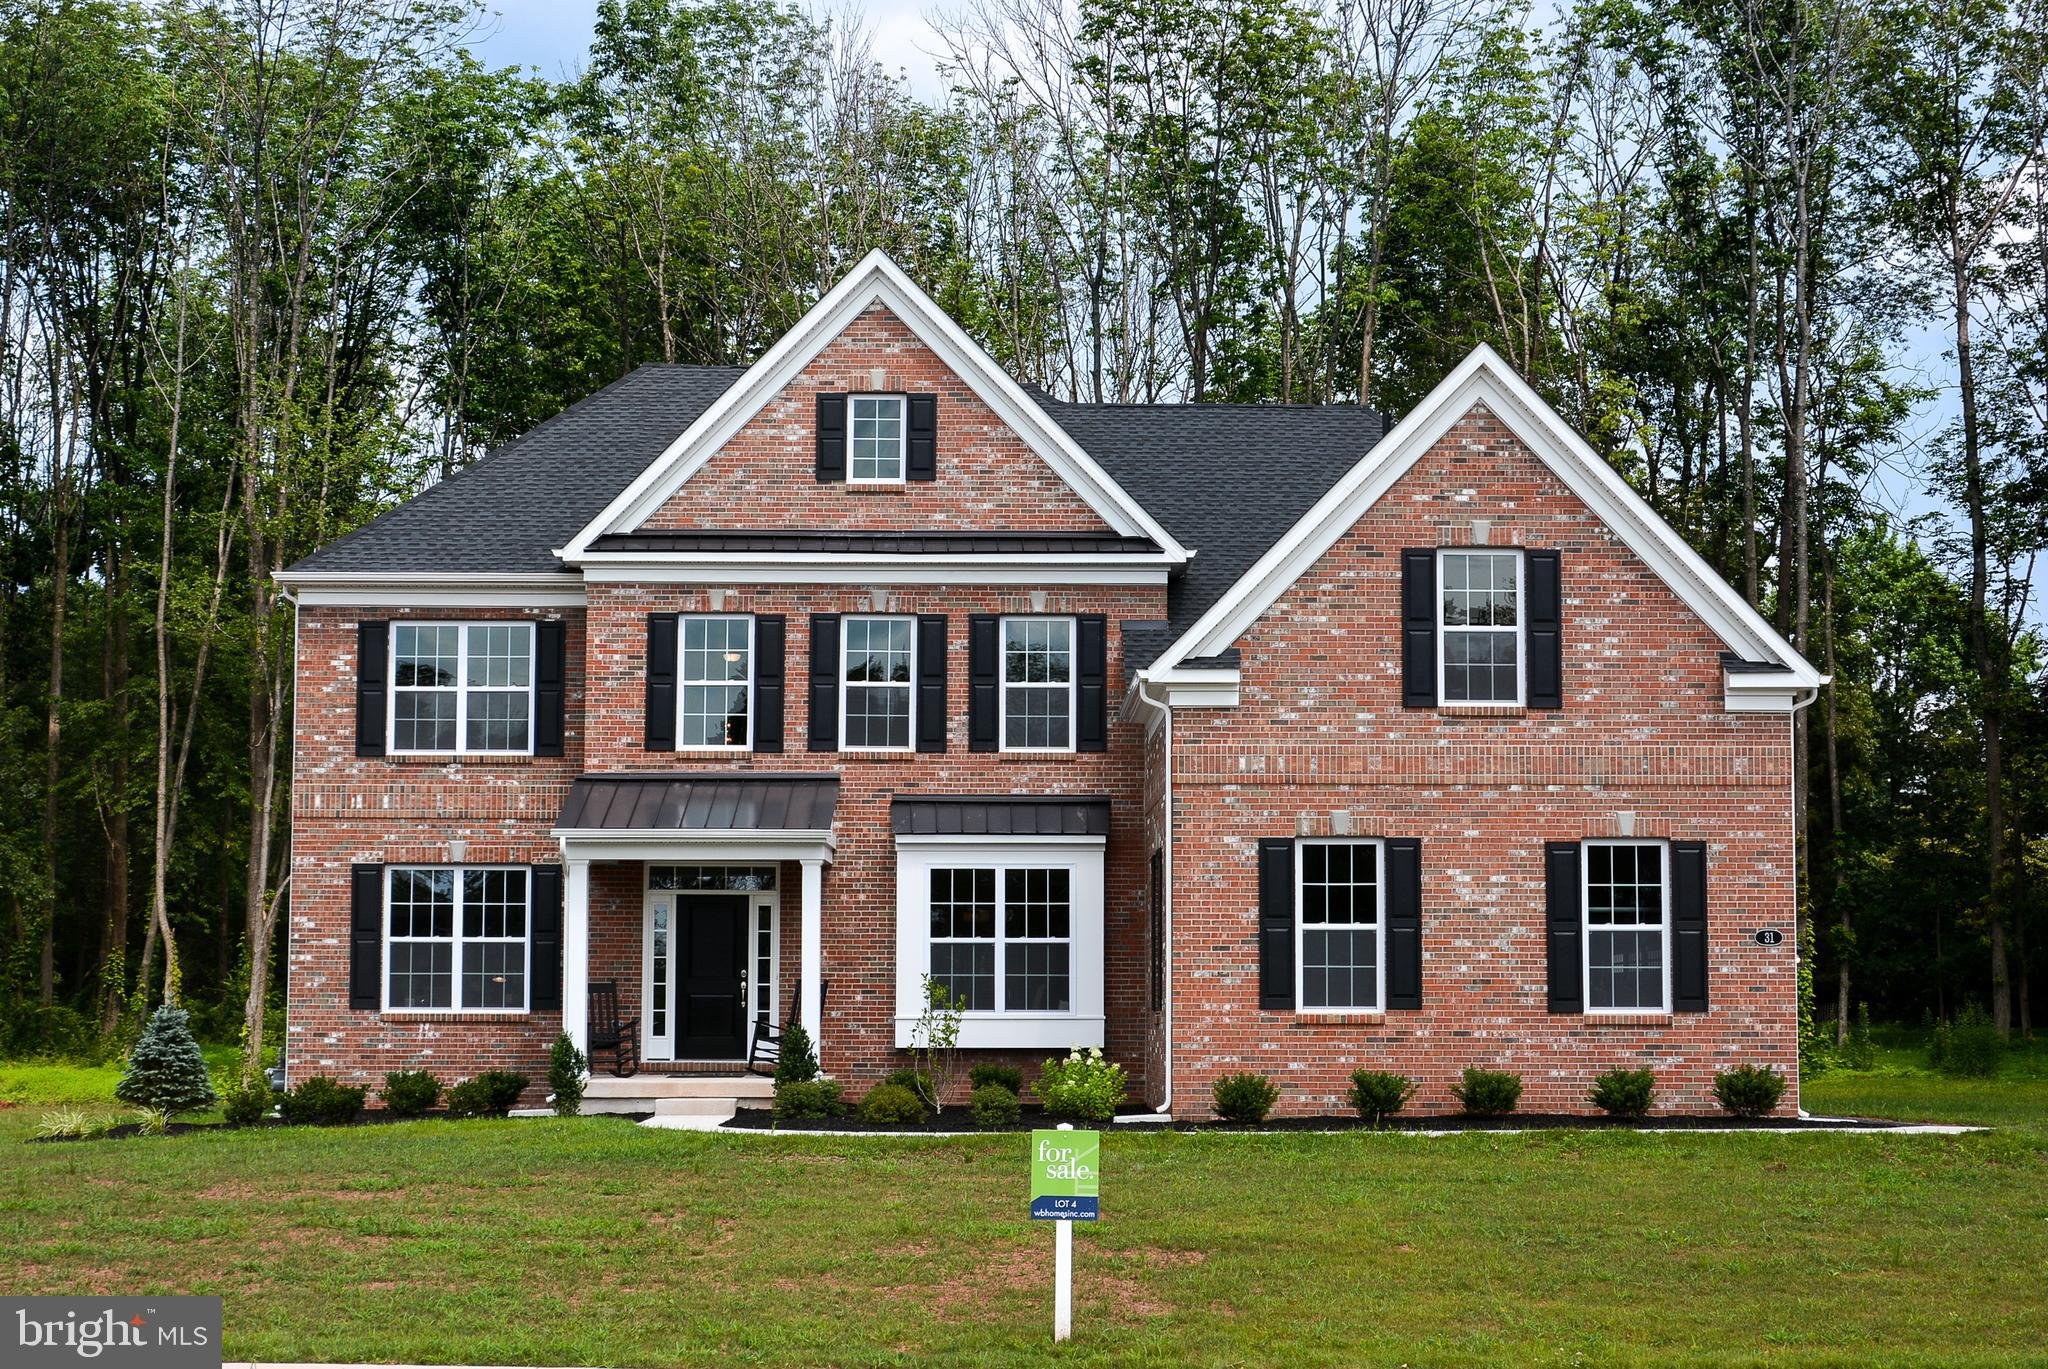 31 STARMONT WAY, COLLEGEVILLE, PA 19426